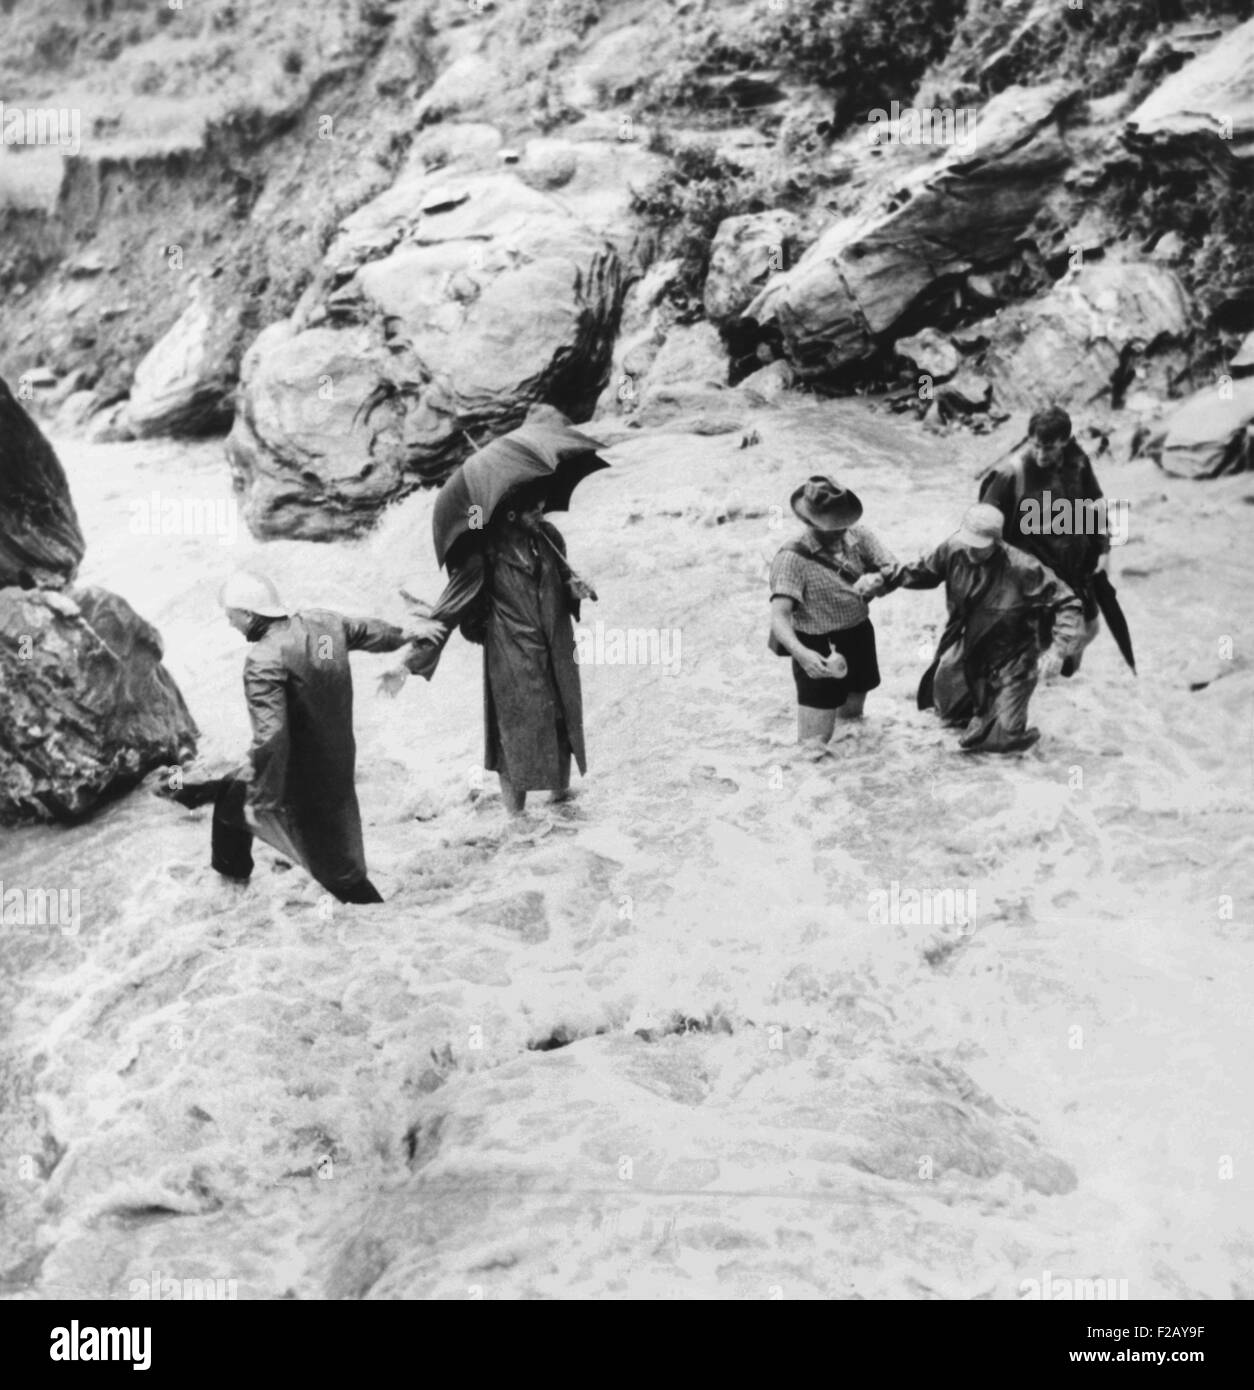 Sir Edmund Hillary's Himalayan expedition crossing a mountain torrent. Sir Edmund Hillary is at extreme right. - Stock Image